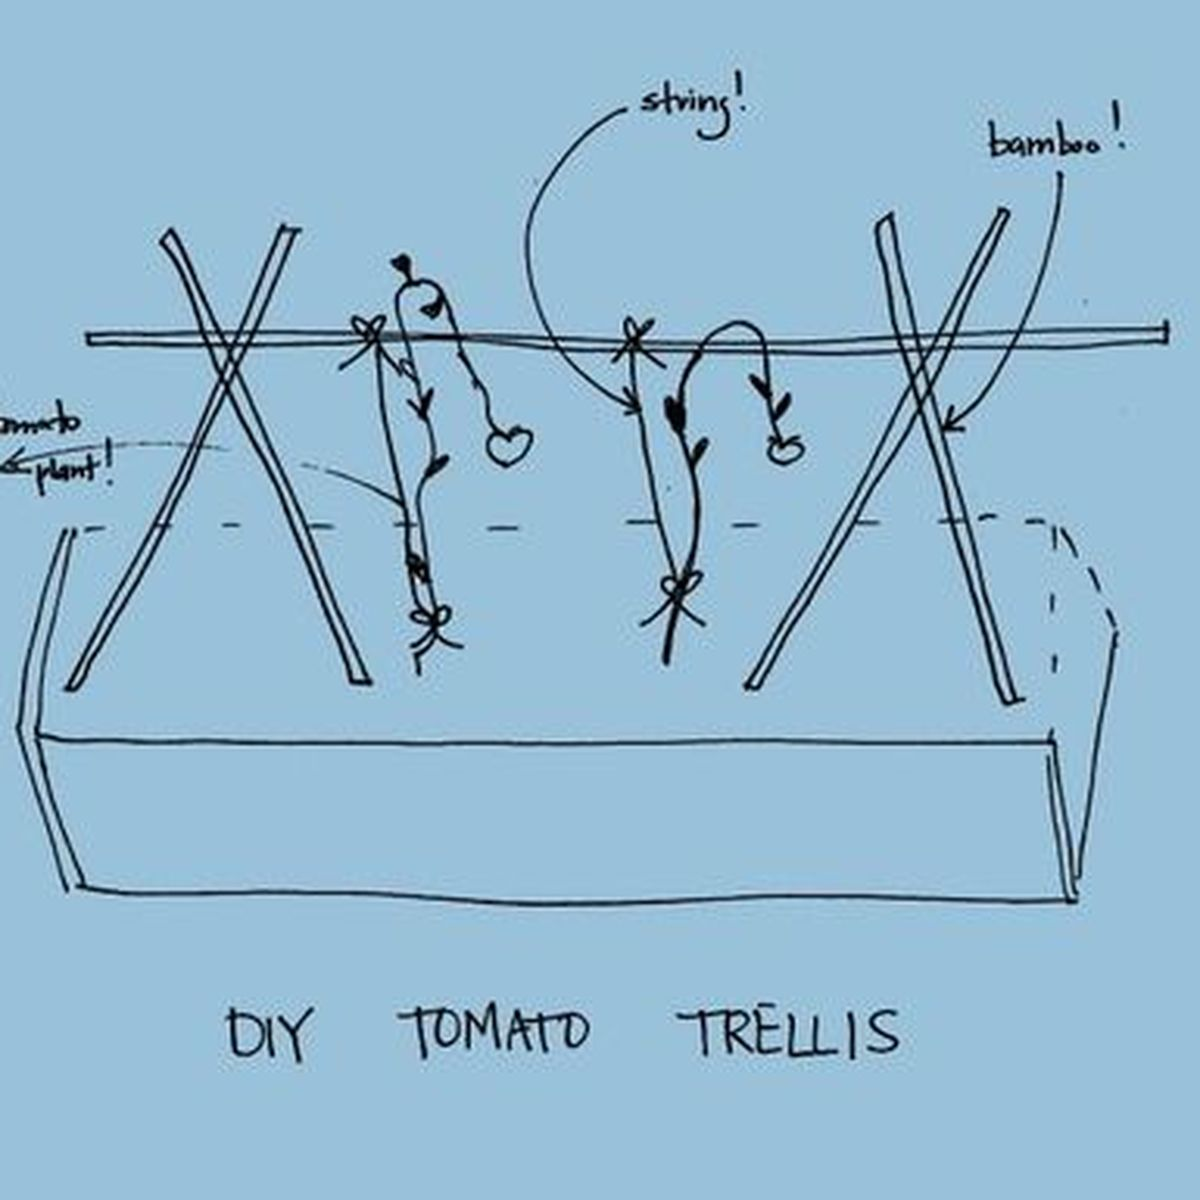 hight resolution of tomato diy pruning and trellises